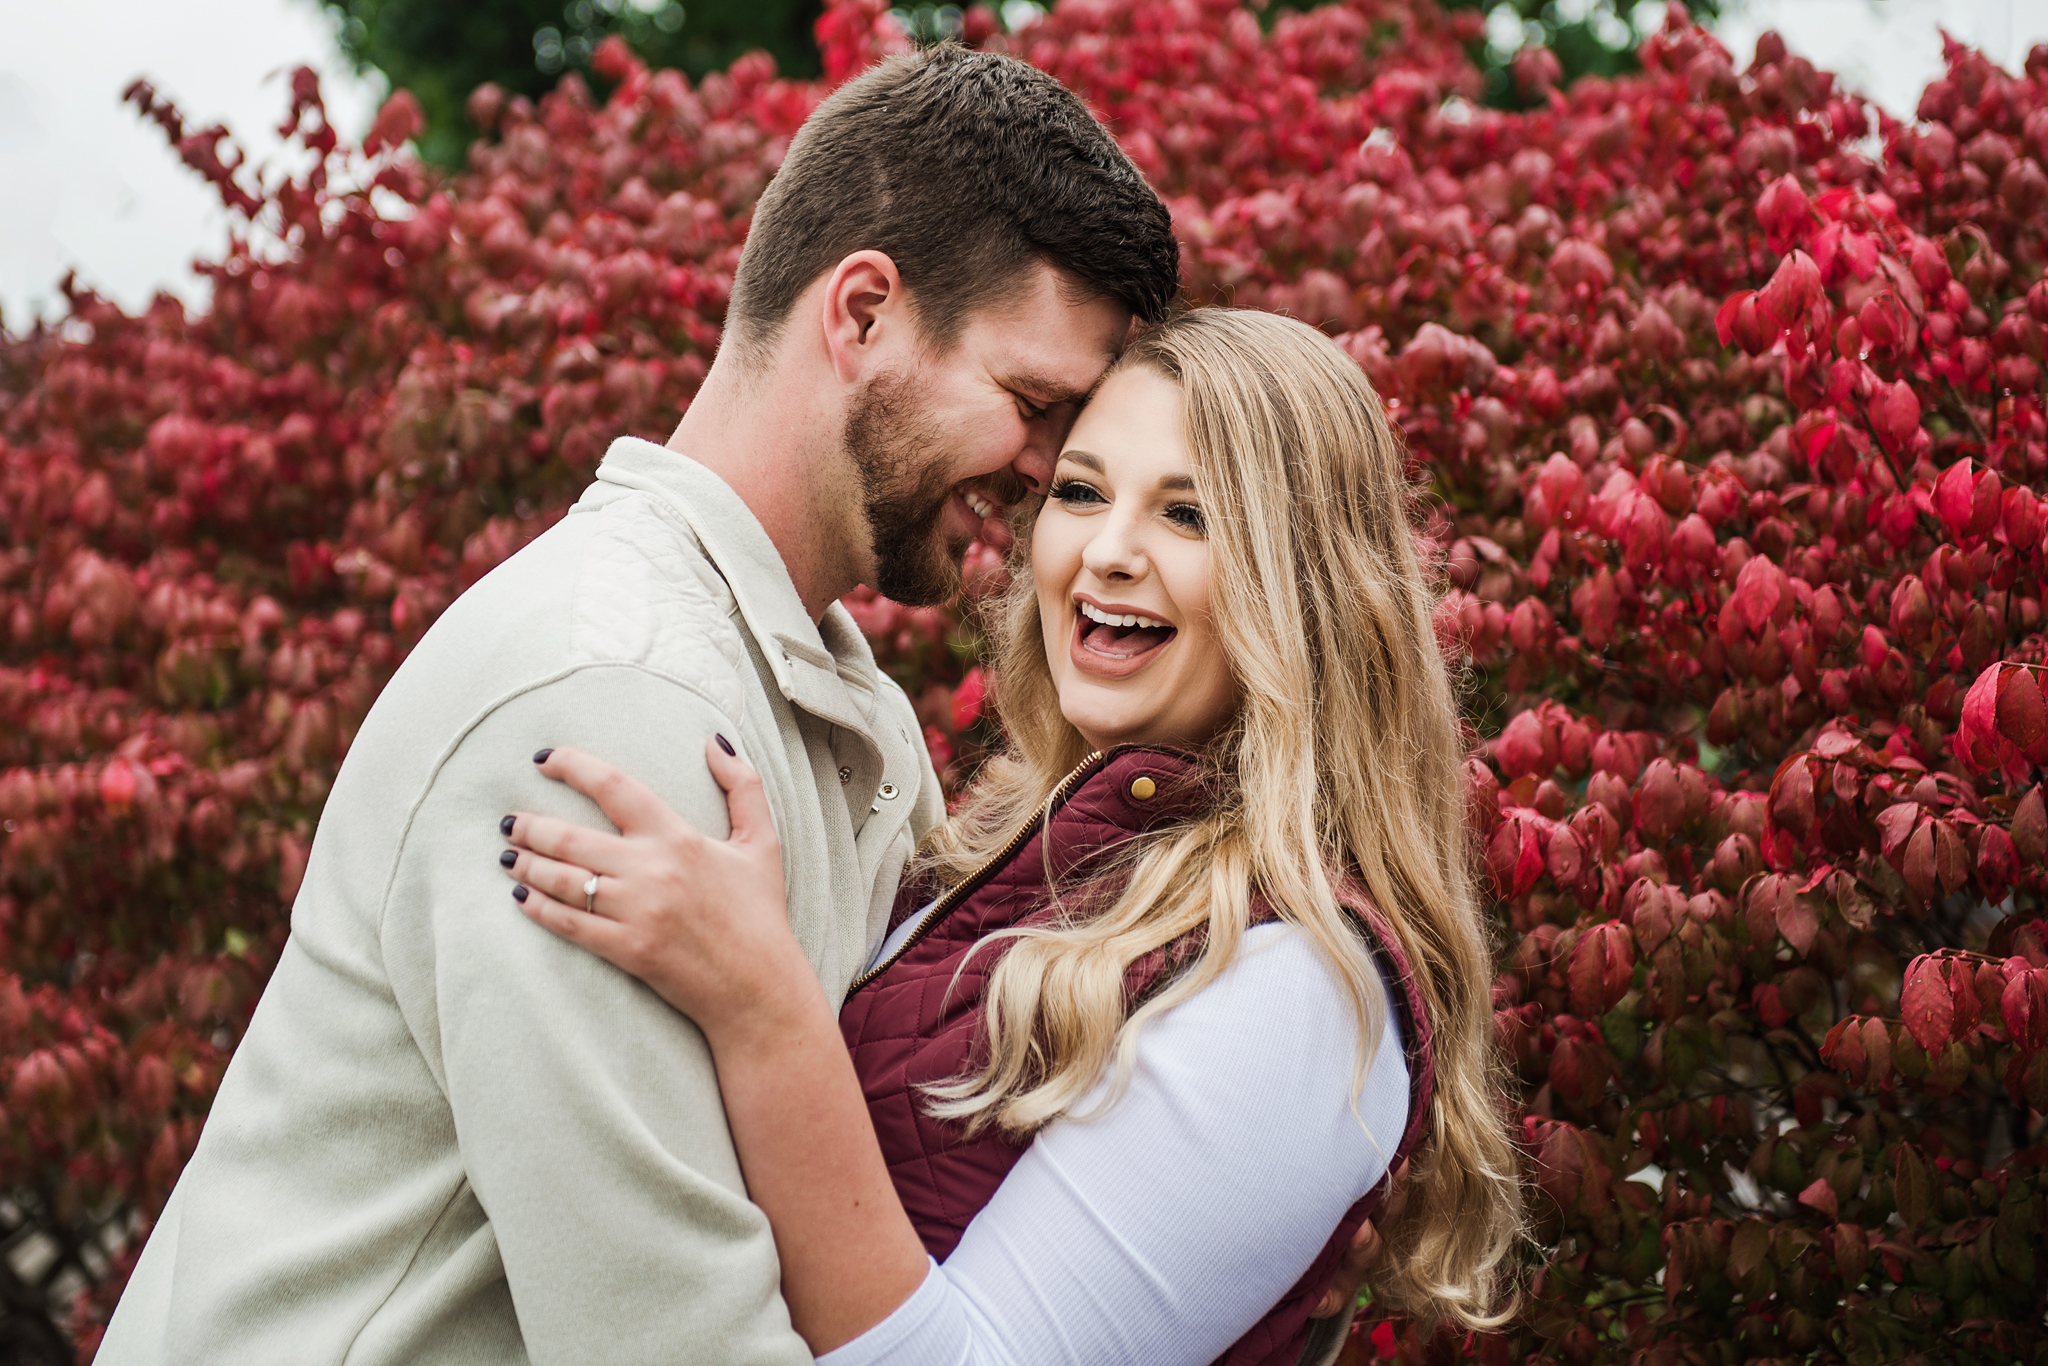 Kershaw_Park_Canandaigua_City_Pier_Finger_Lakes_Engagement_Session_JILL_STUDIO_Rochester_NY_Photographer_DSC_1463.jpg